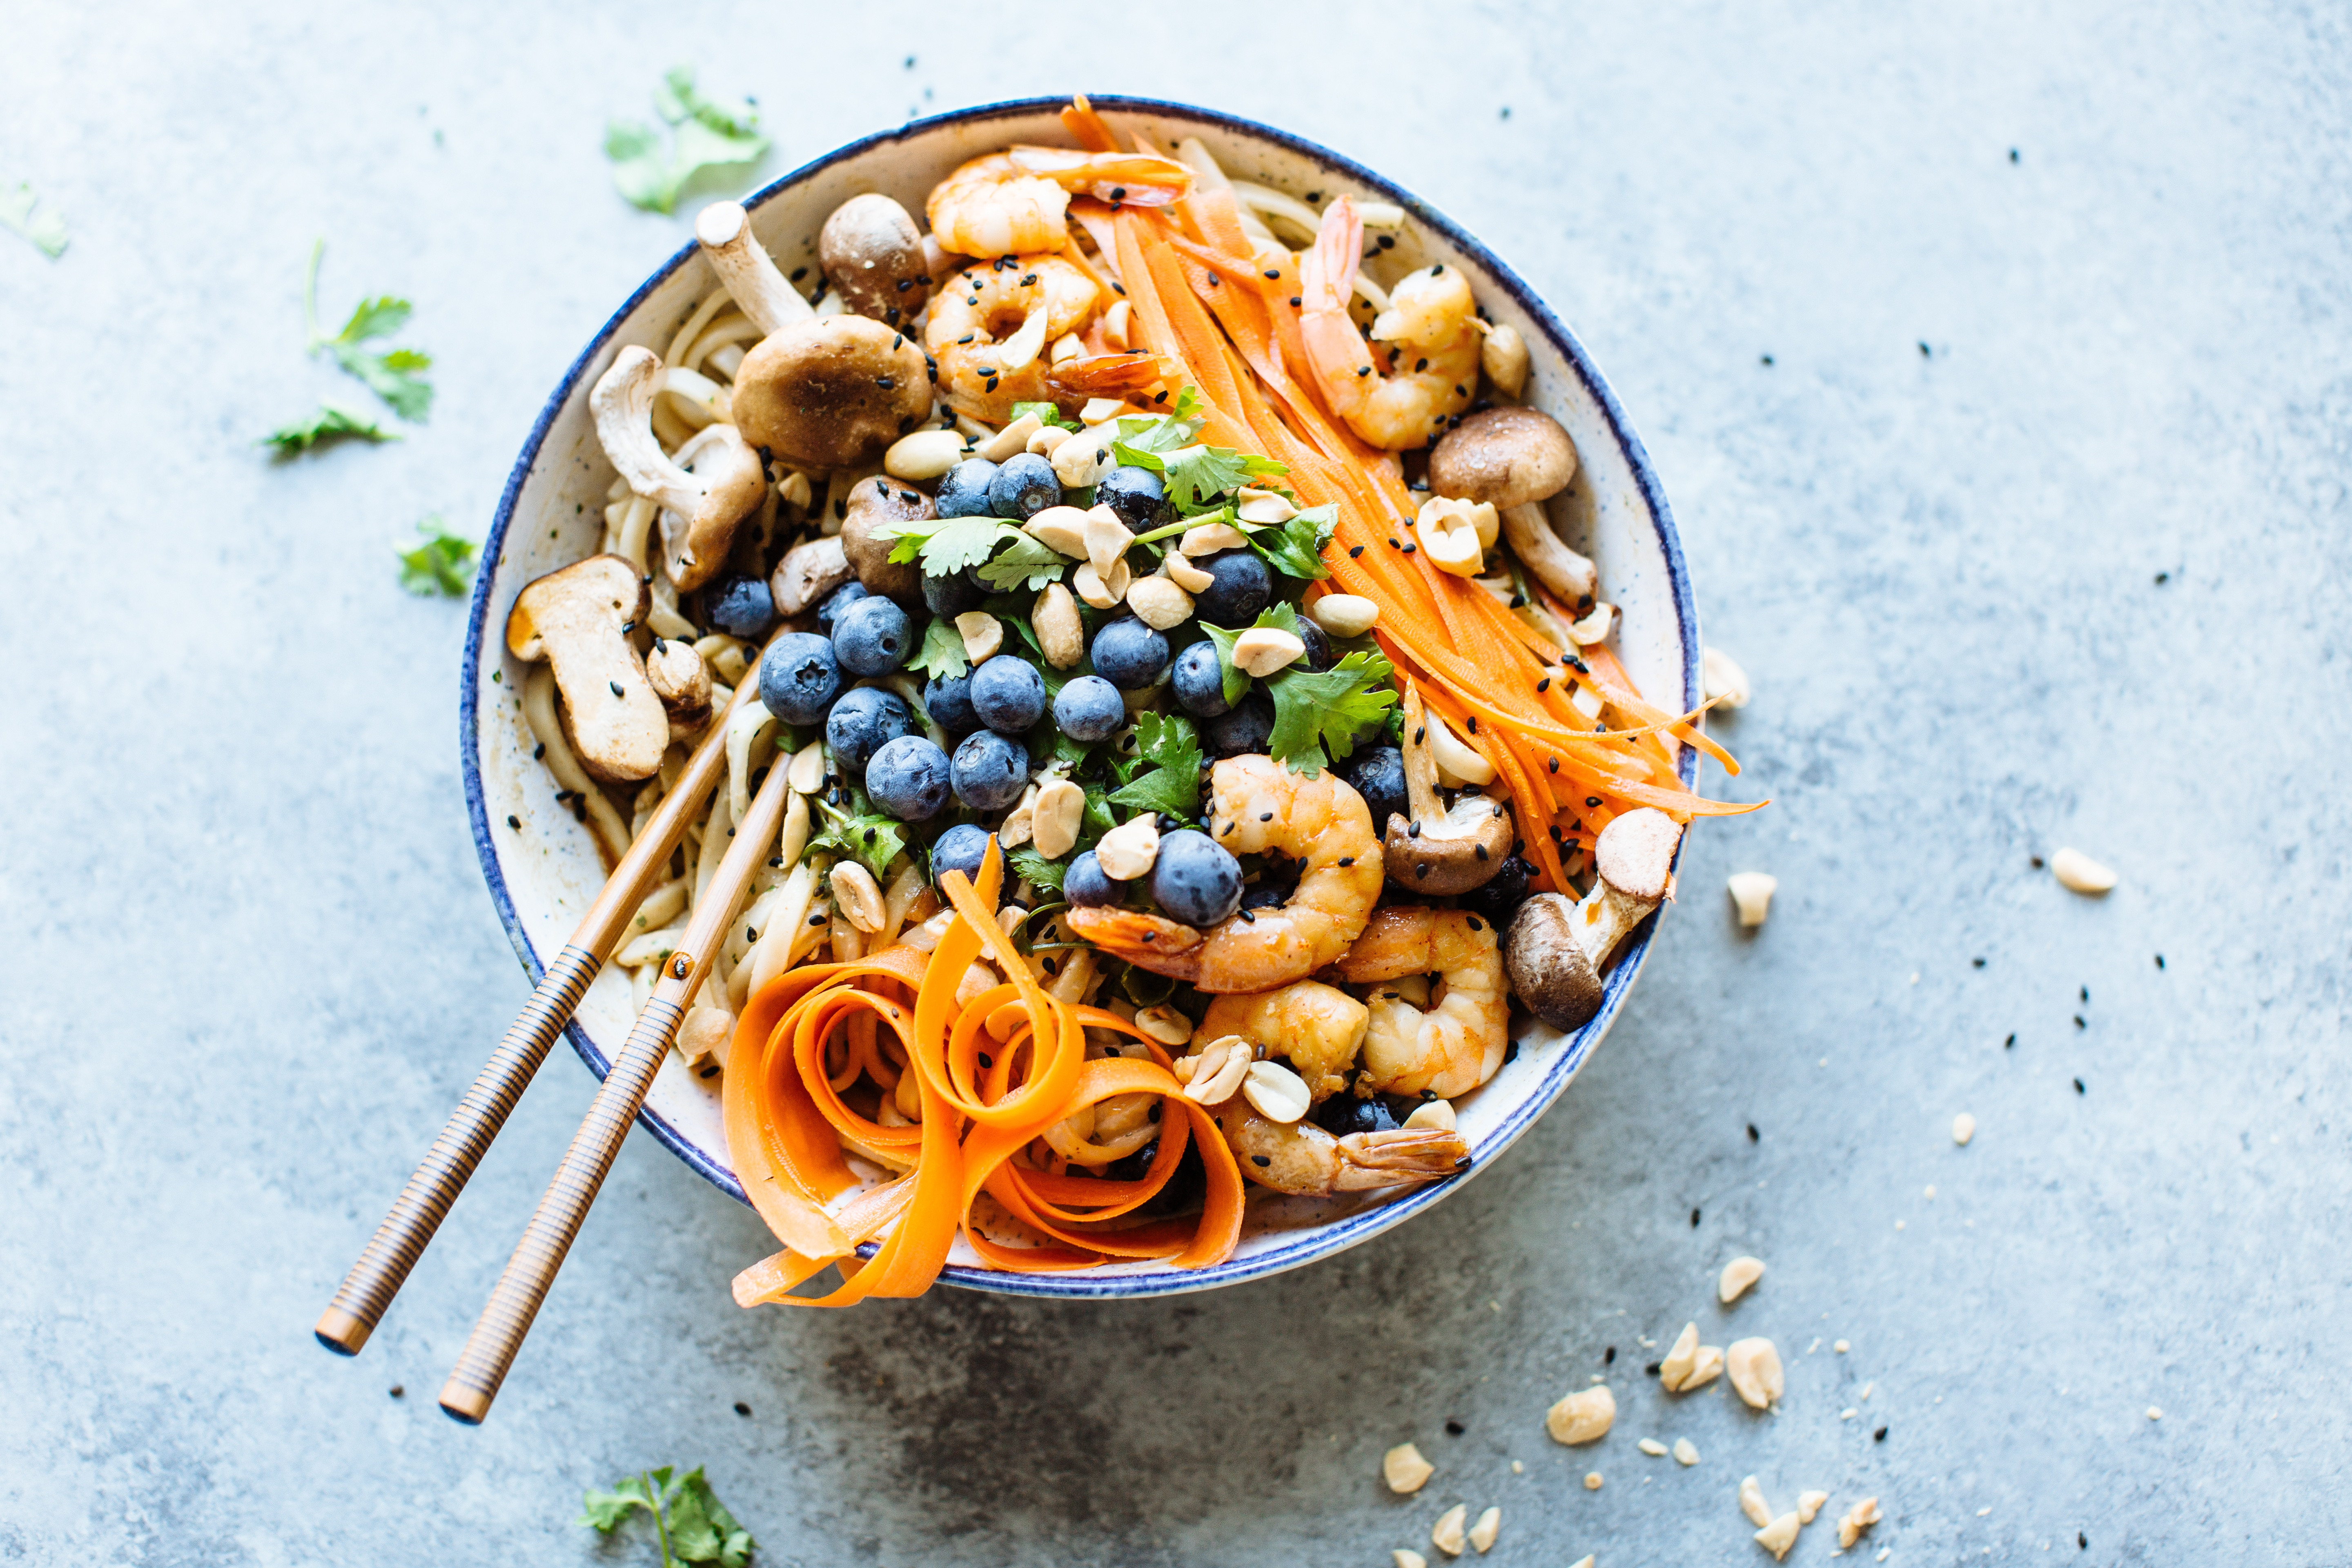 Thai Noodles with Blueberries & Peanuts